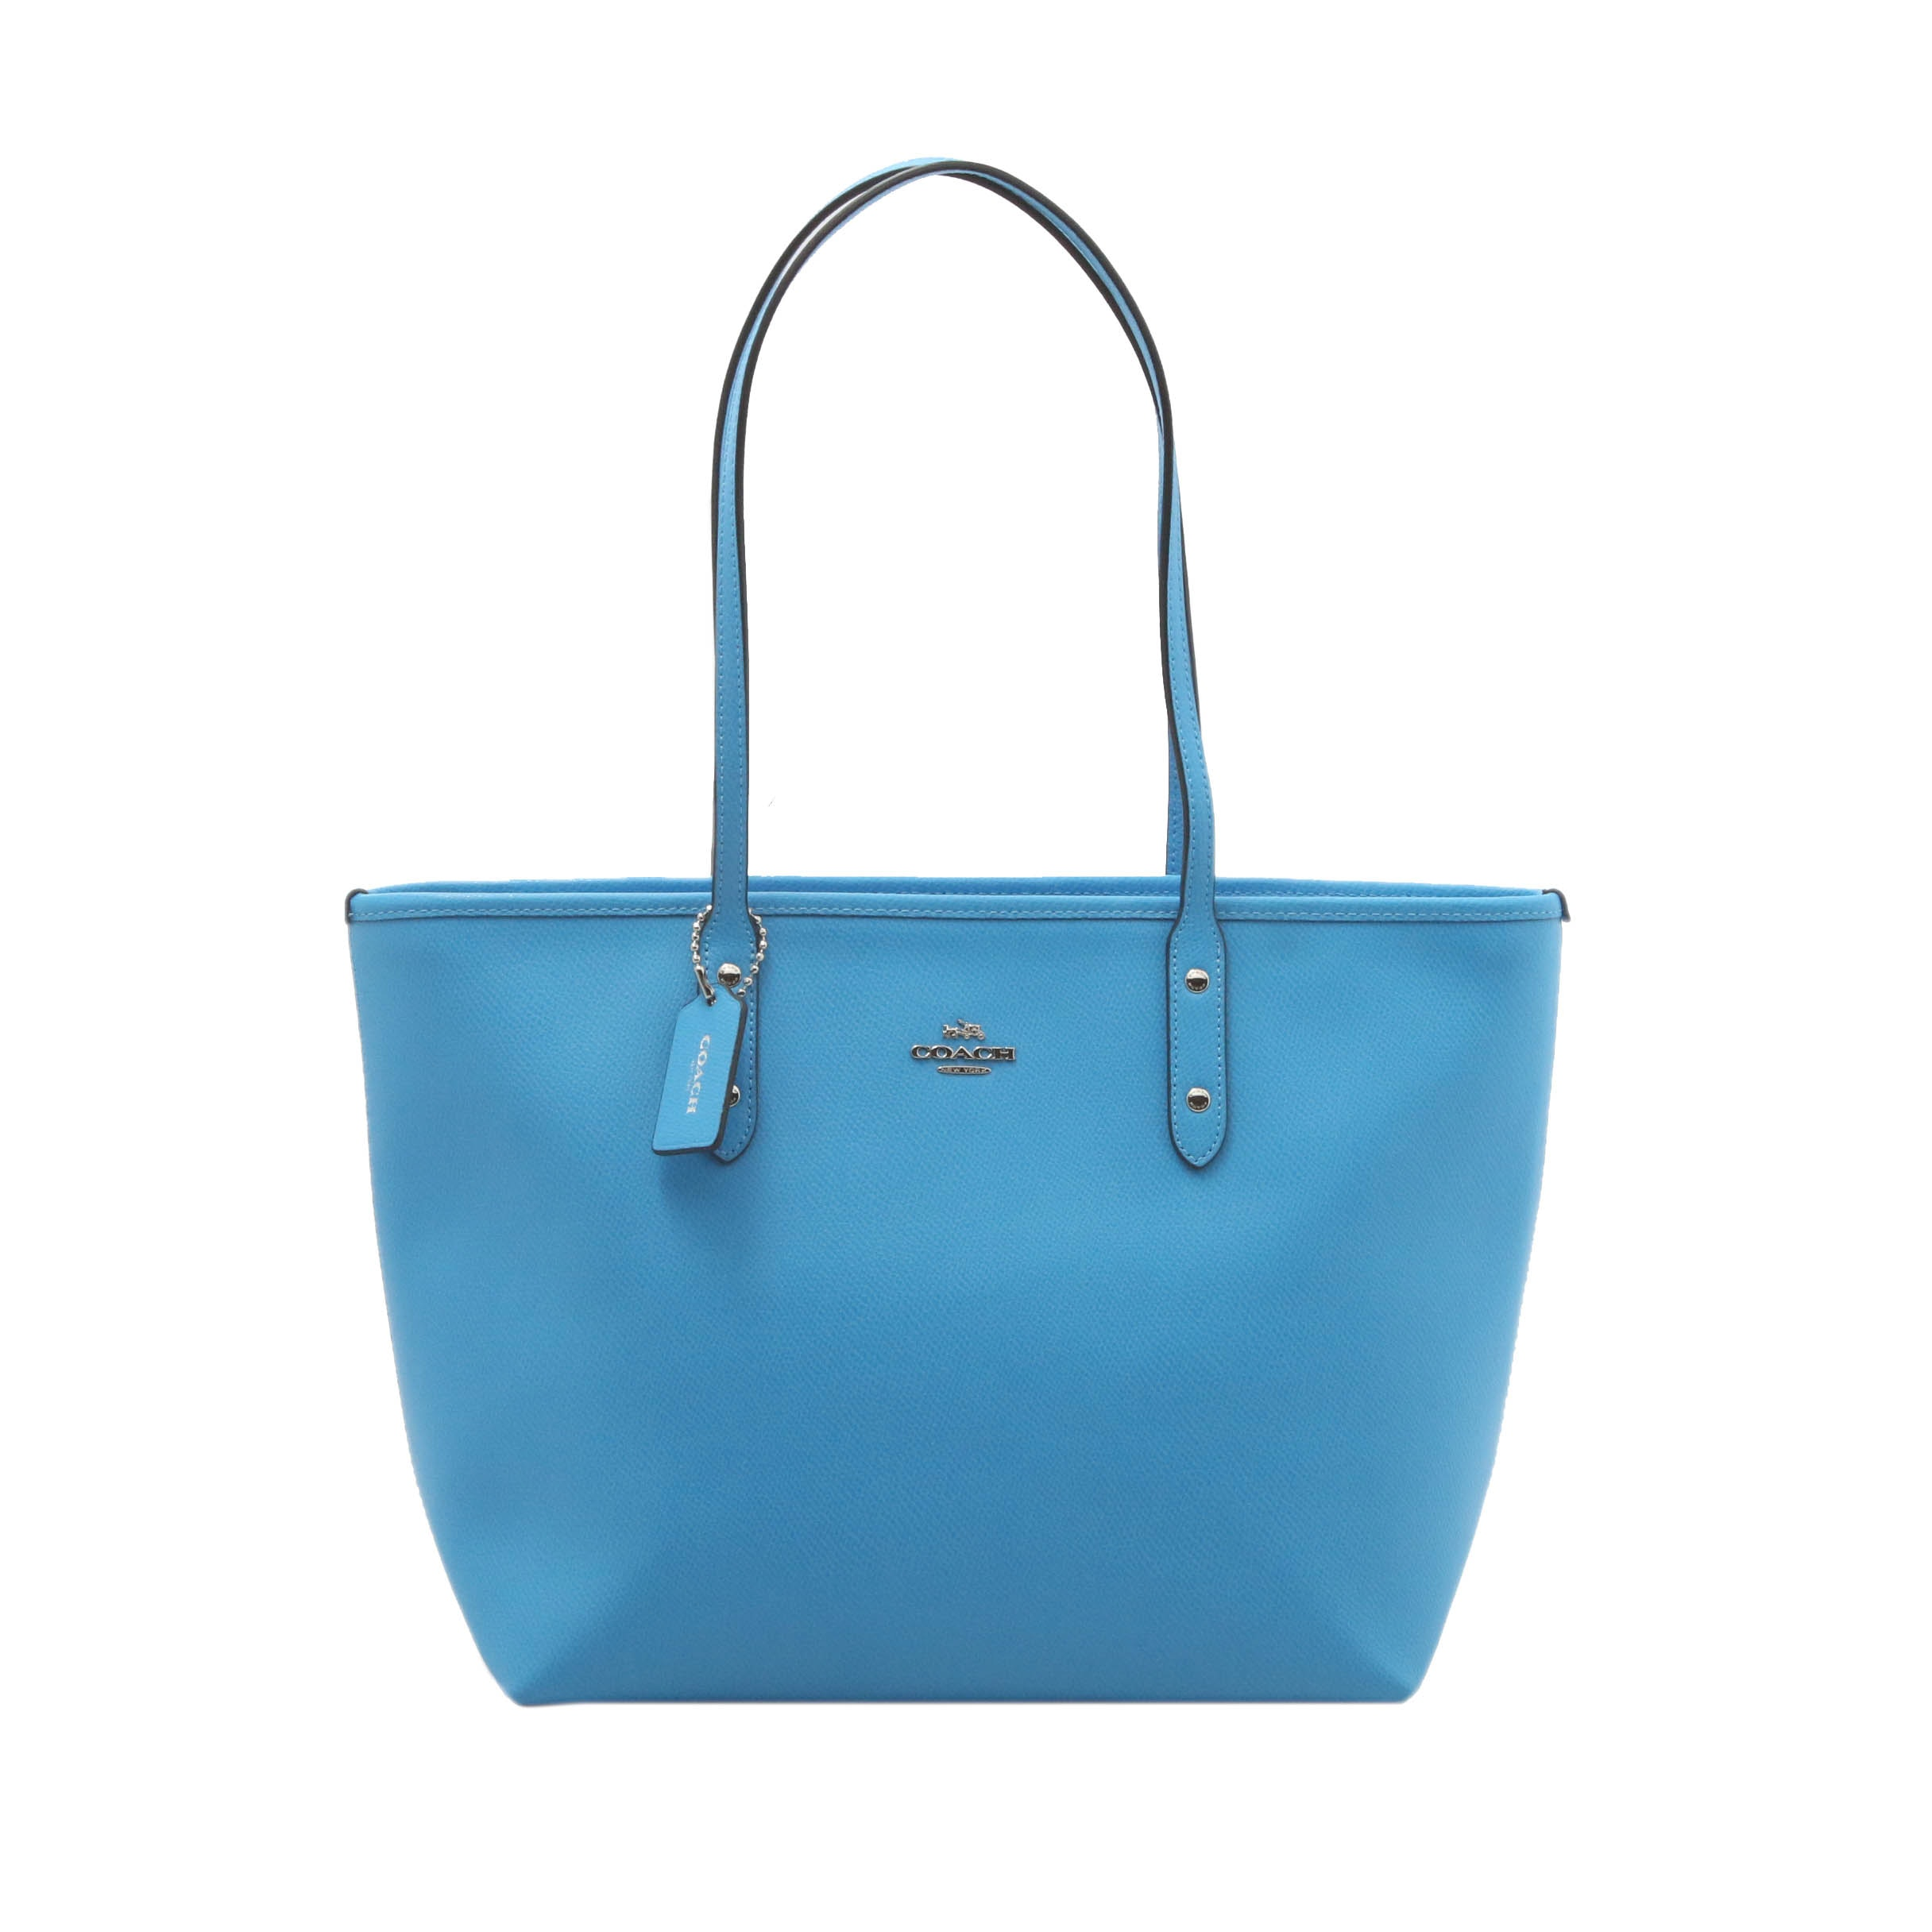 Coach Cerulean Pebbled Faux Leather Tote Bag